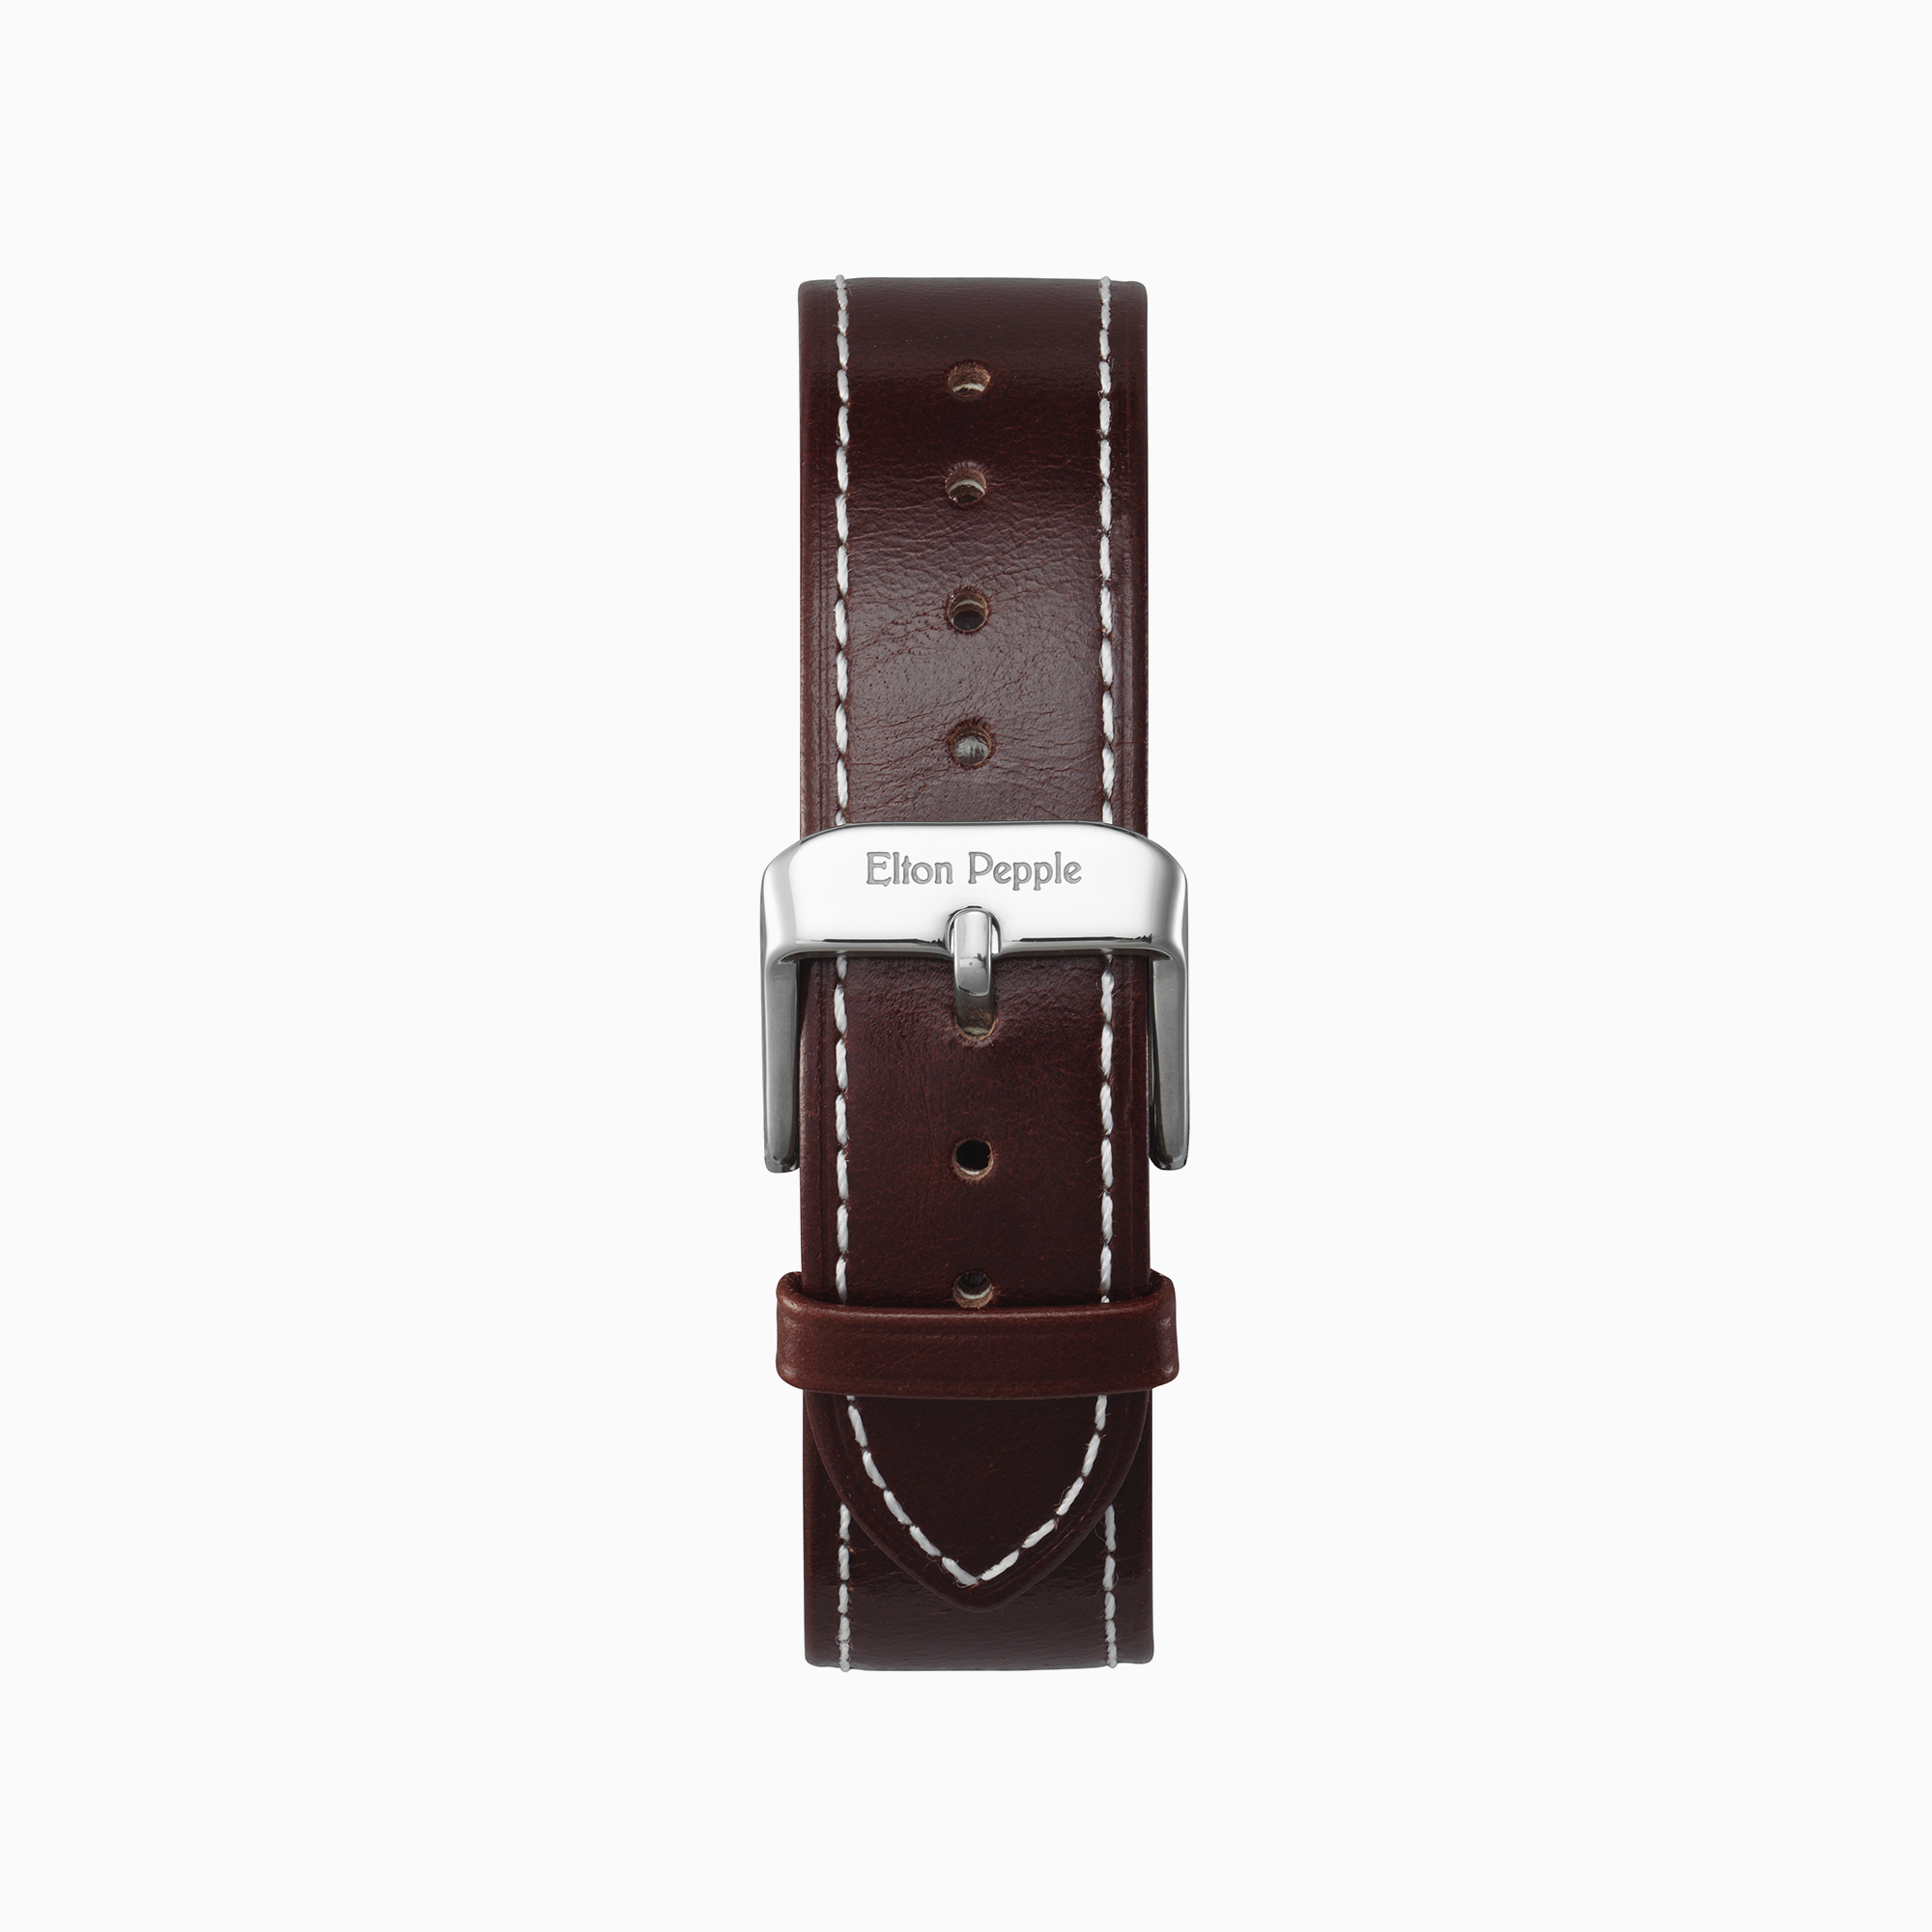 Loop Stitch - Silver leather strap